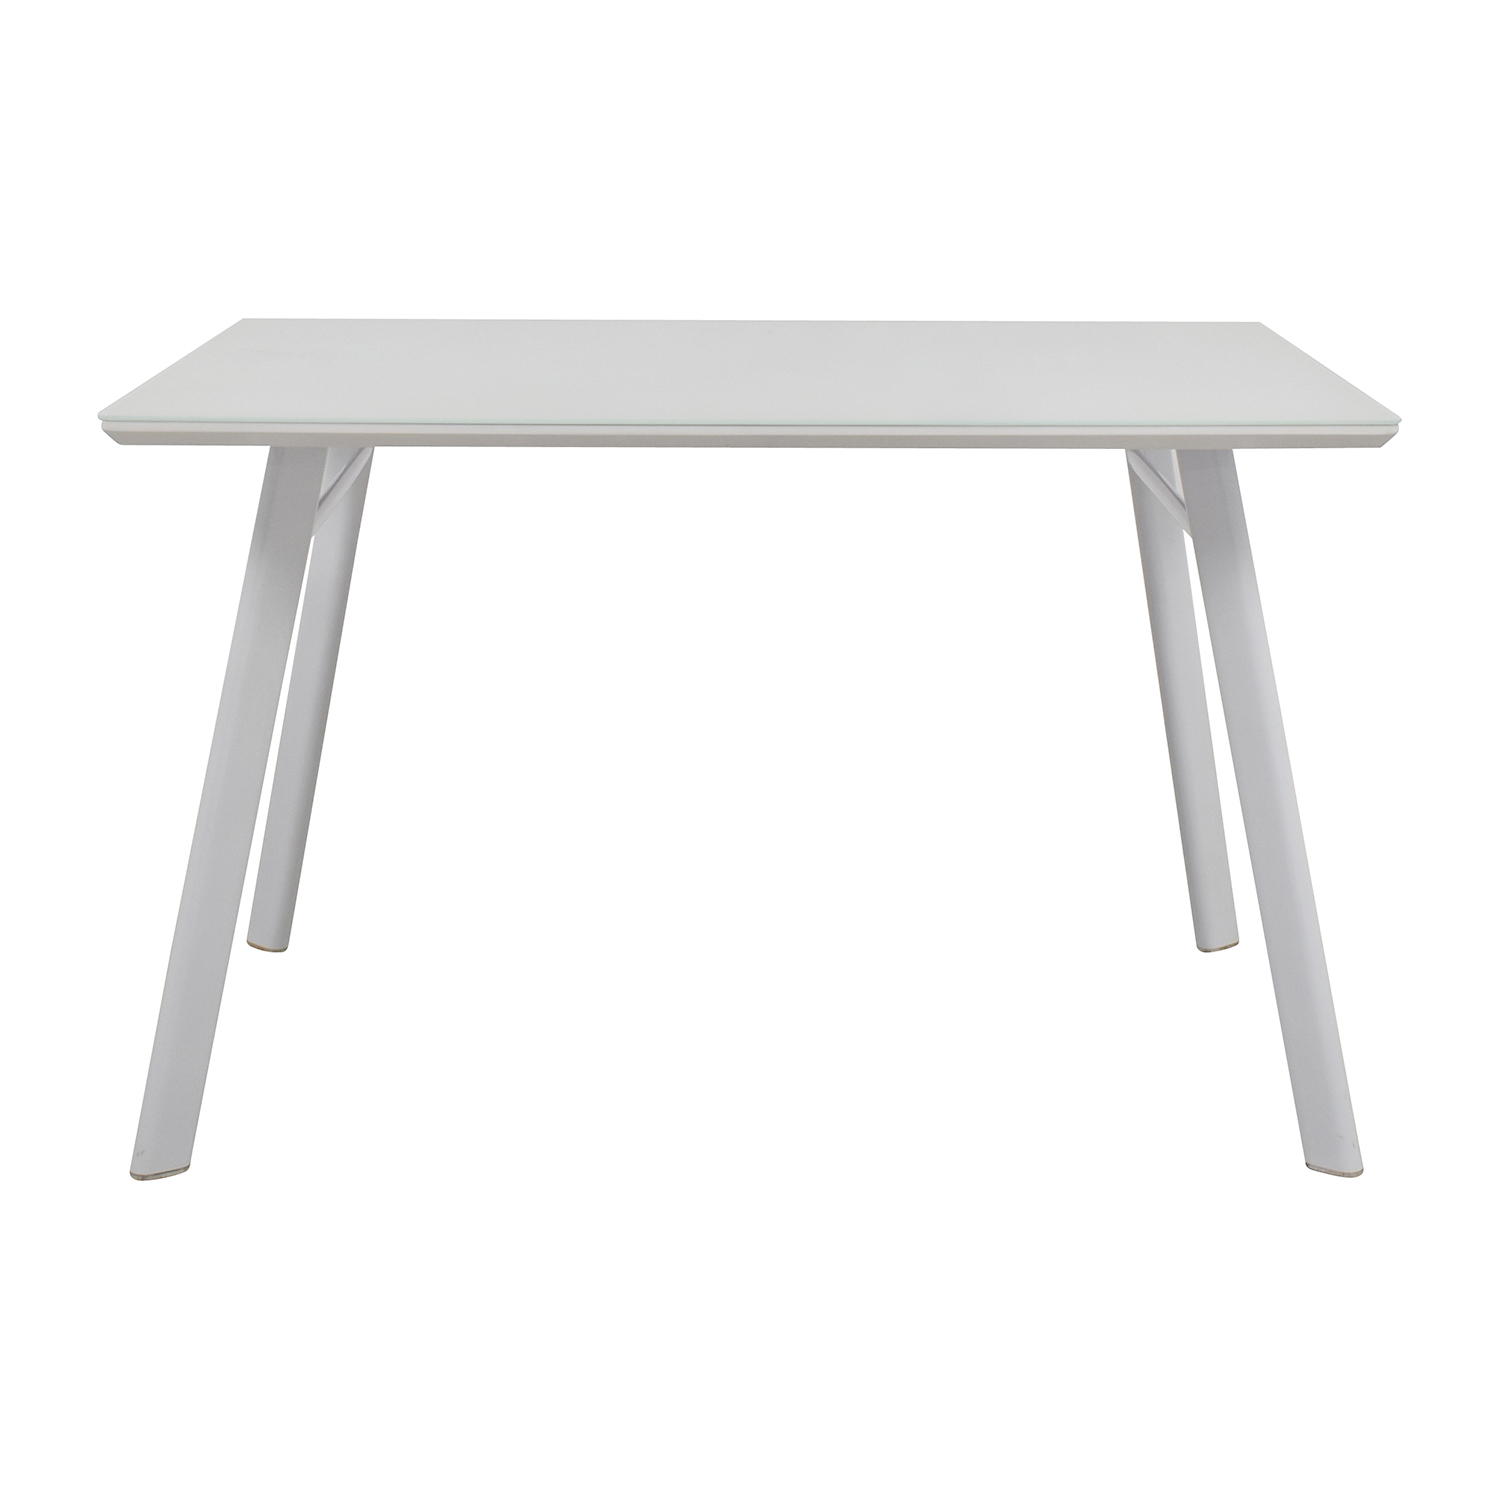 J&M J&M Furniture Height Dining Table white